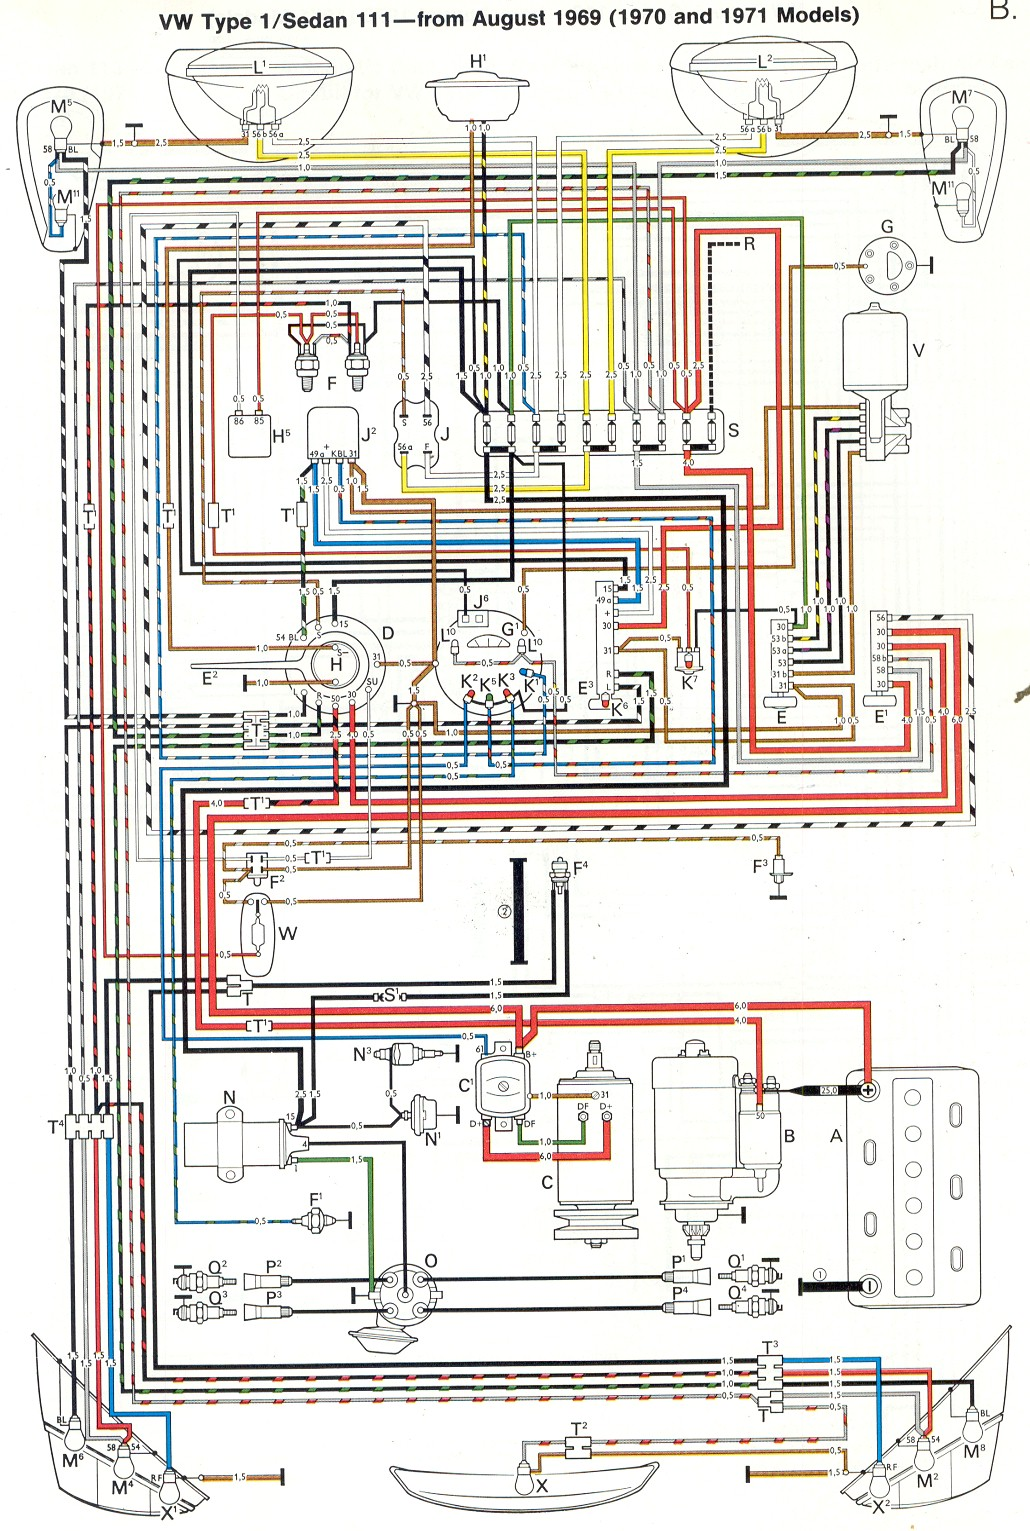 thesamba.com :: type 1 wiring diagrams 1968 vw bug wiring 69 vw bug wiring diagram #12